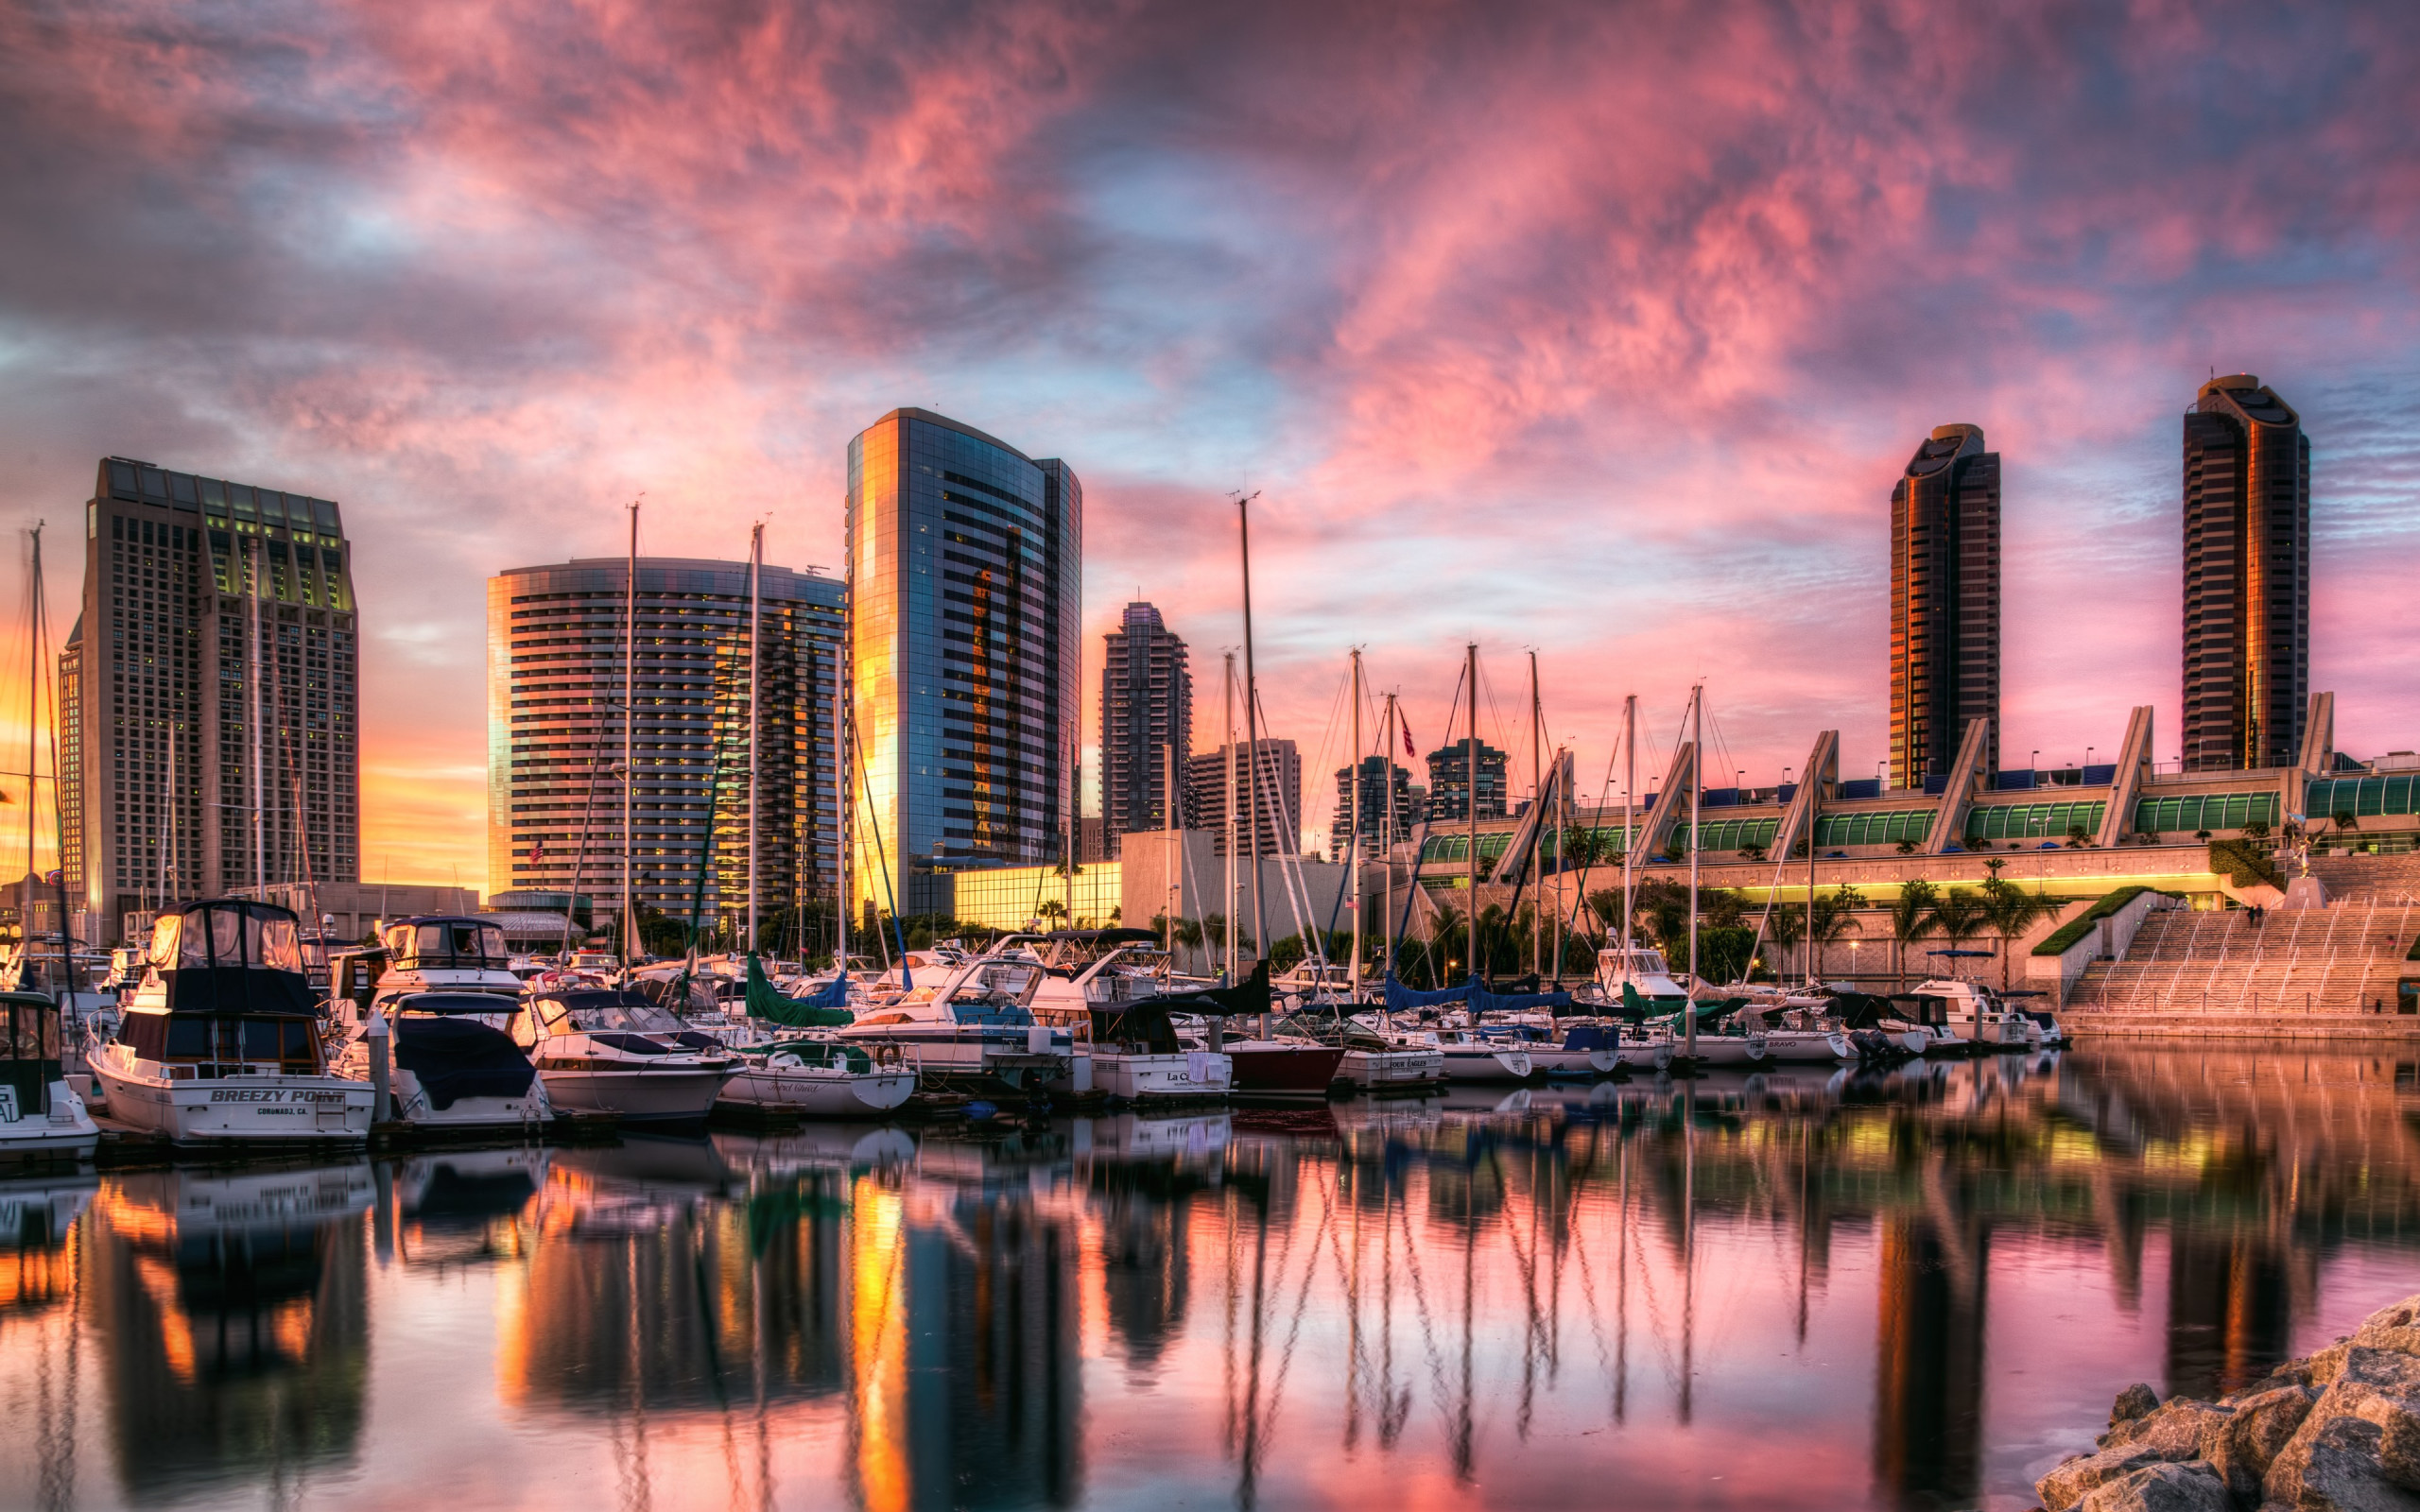 Sunset in San Diego harbor wallpaper 2560x1600